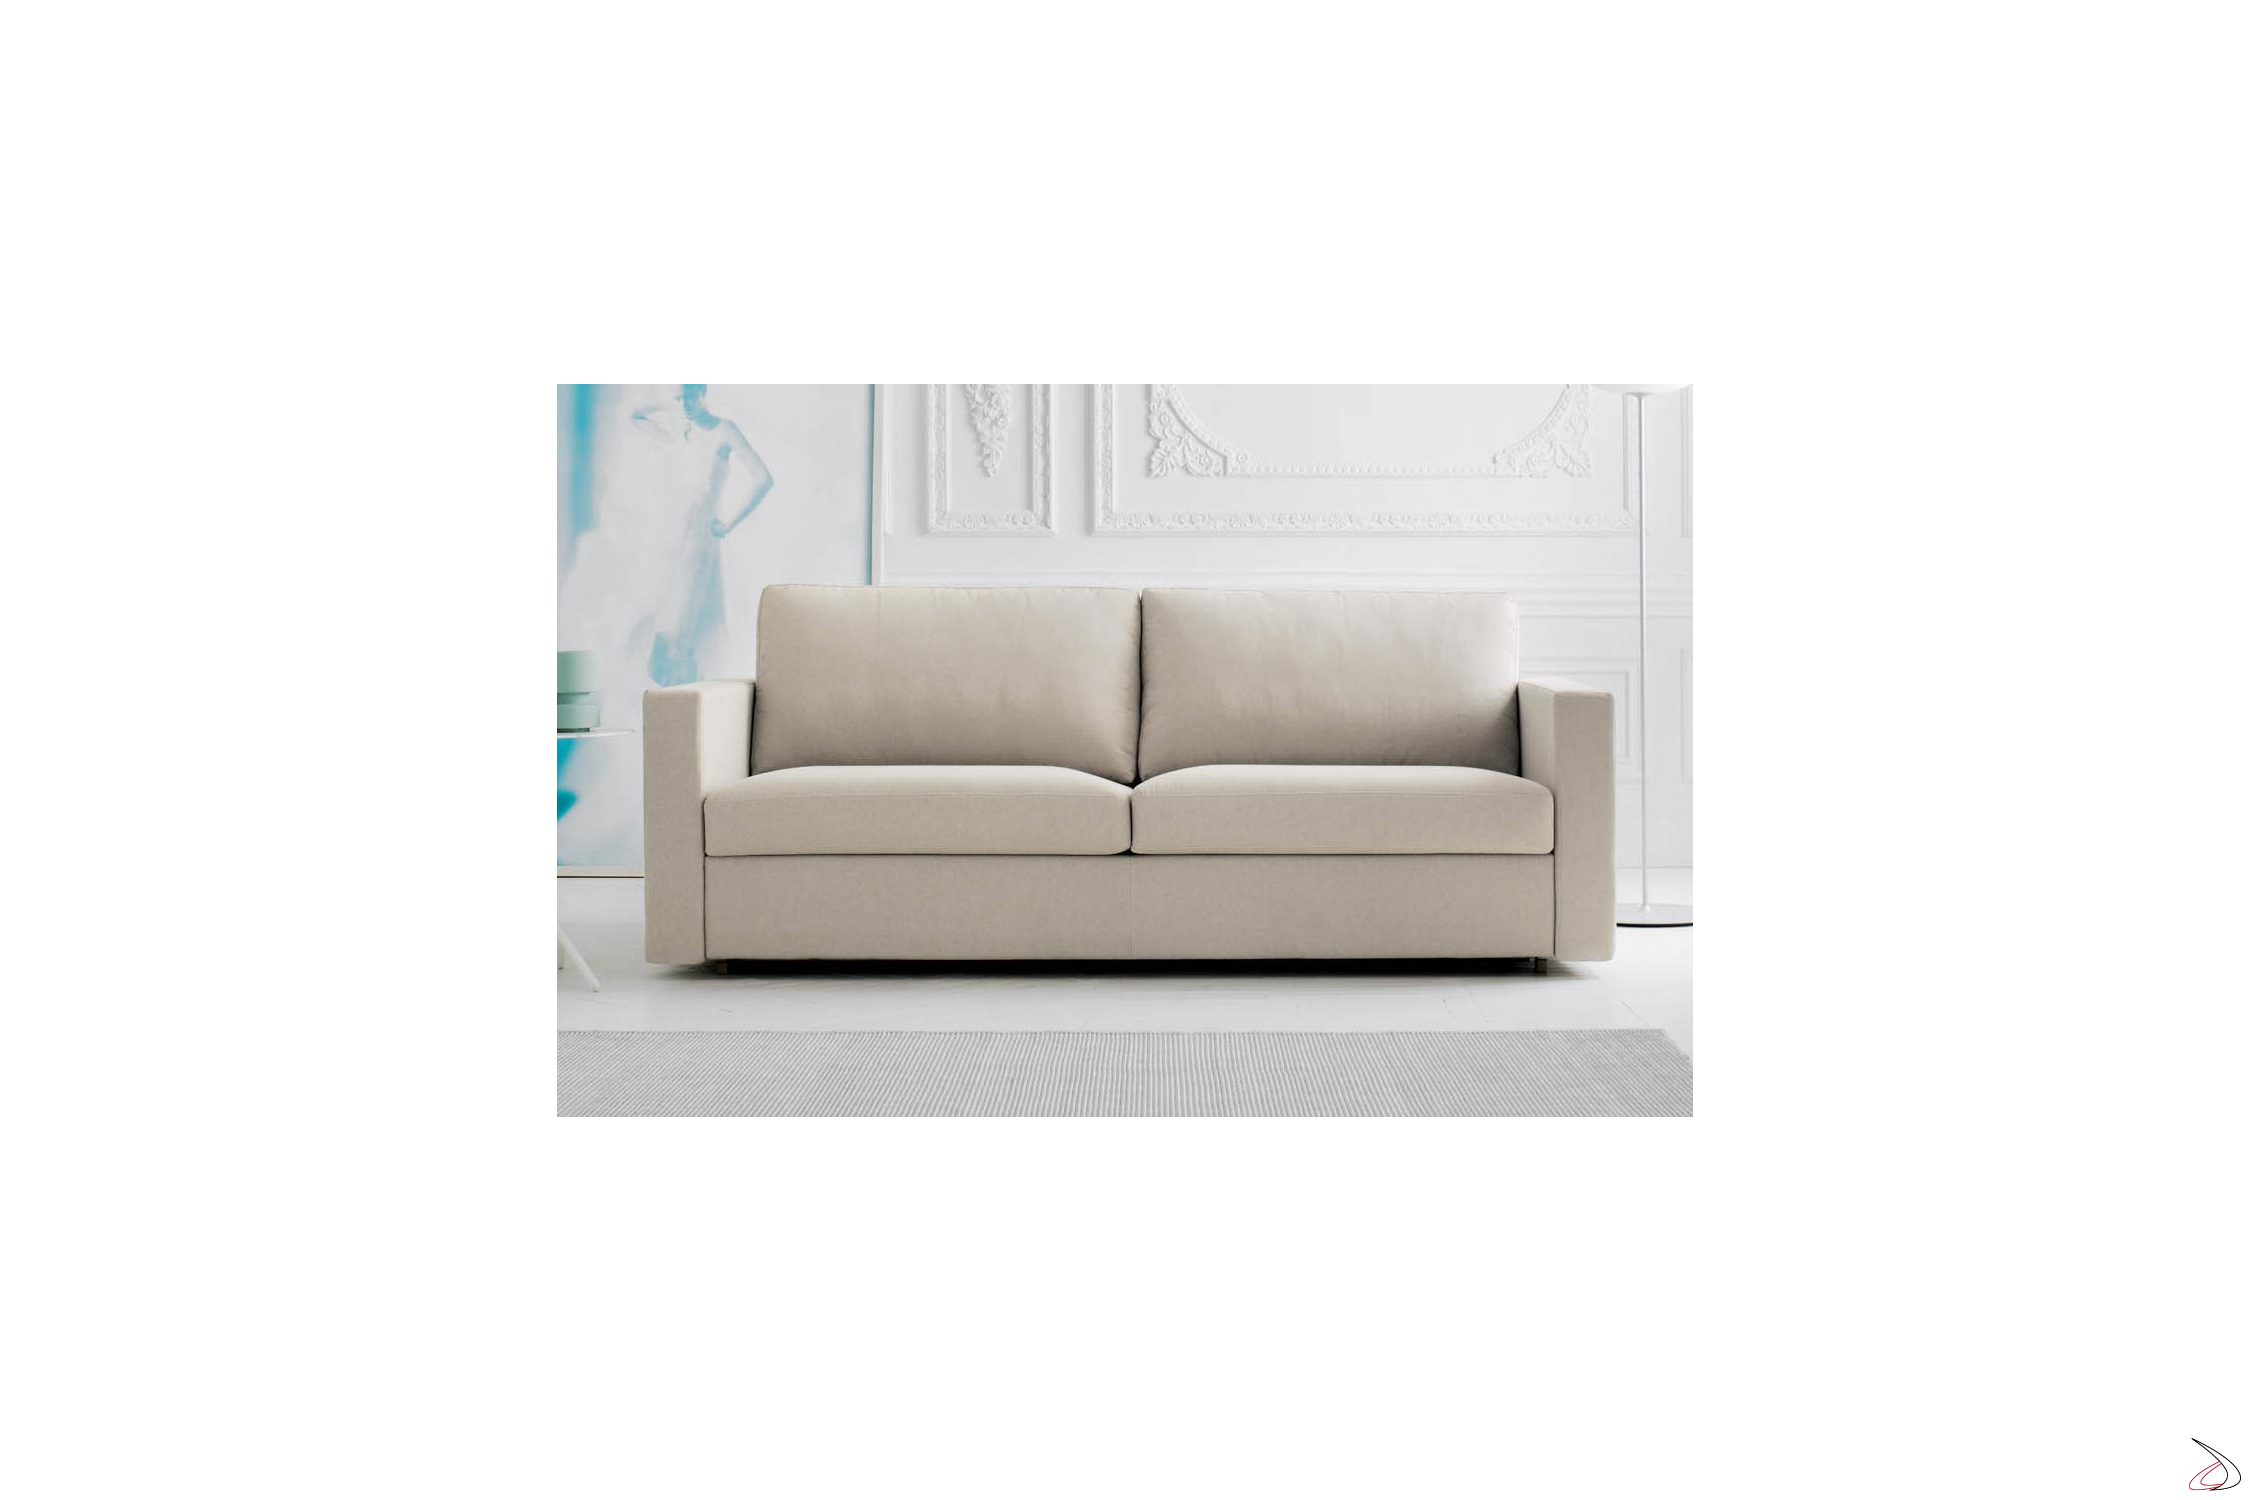 Convertible King Size Sofa Bed Sort Toparredi